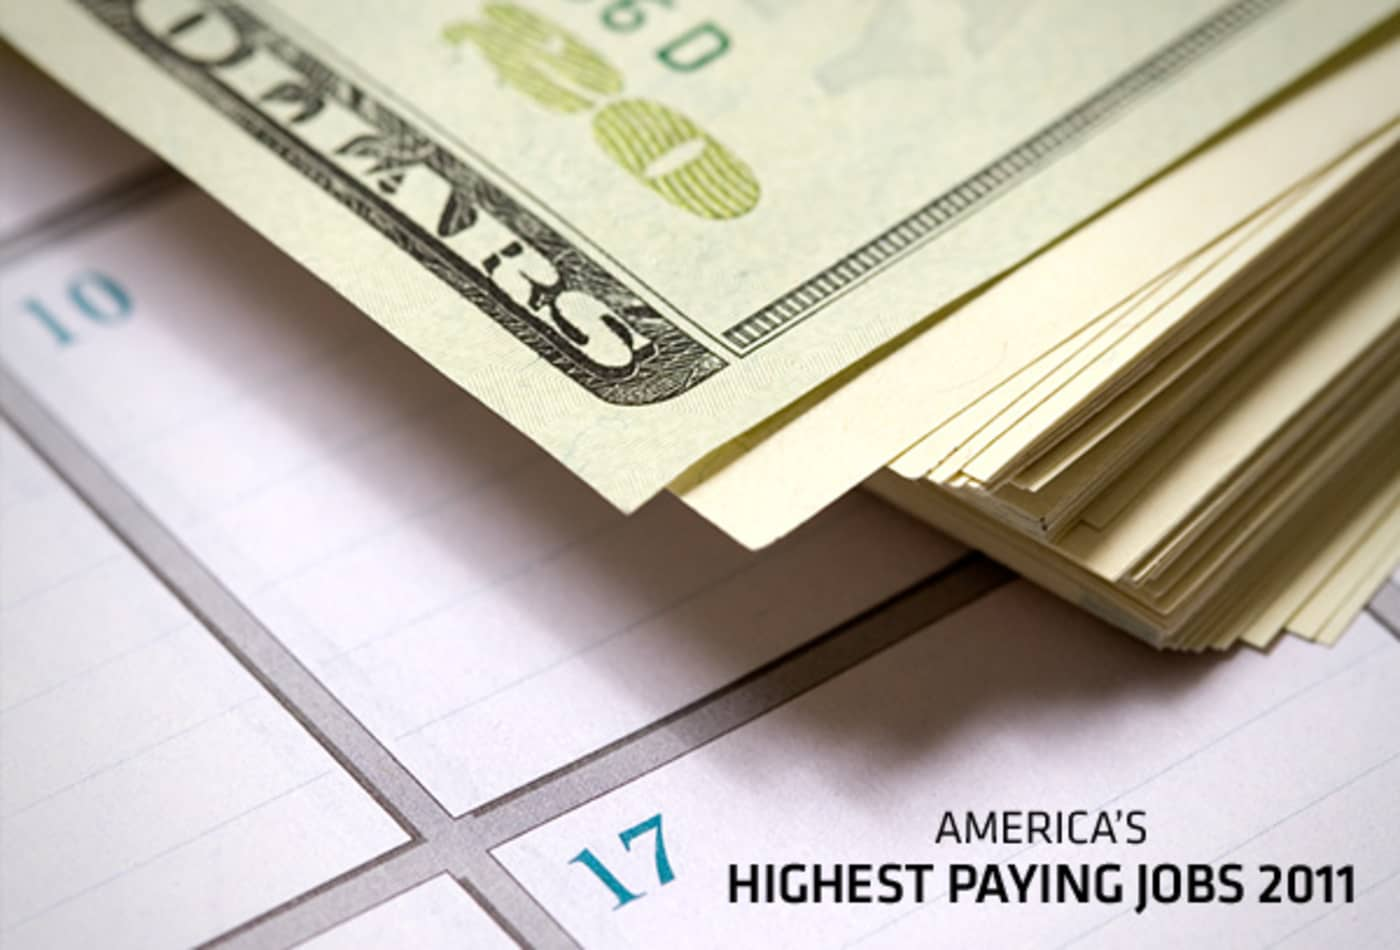 CNBC_americas_highest_paying_jobs_cover.jpg